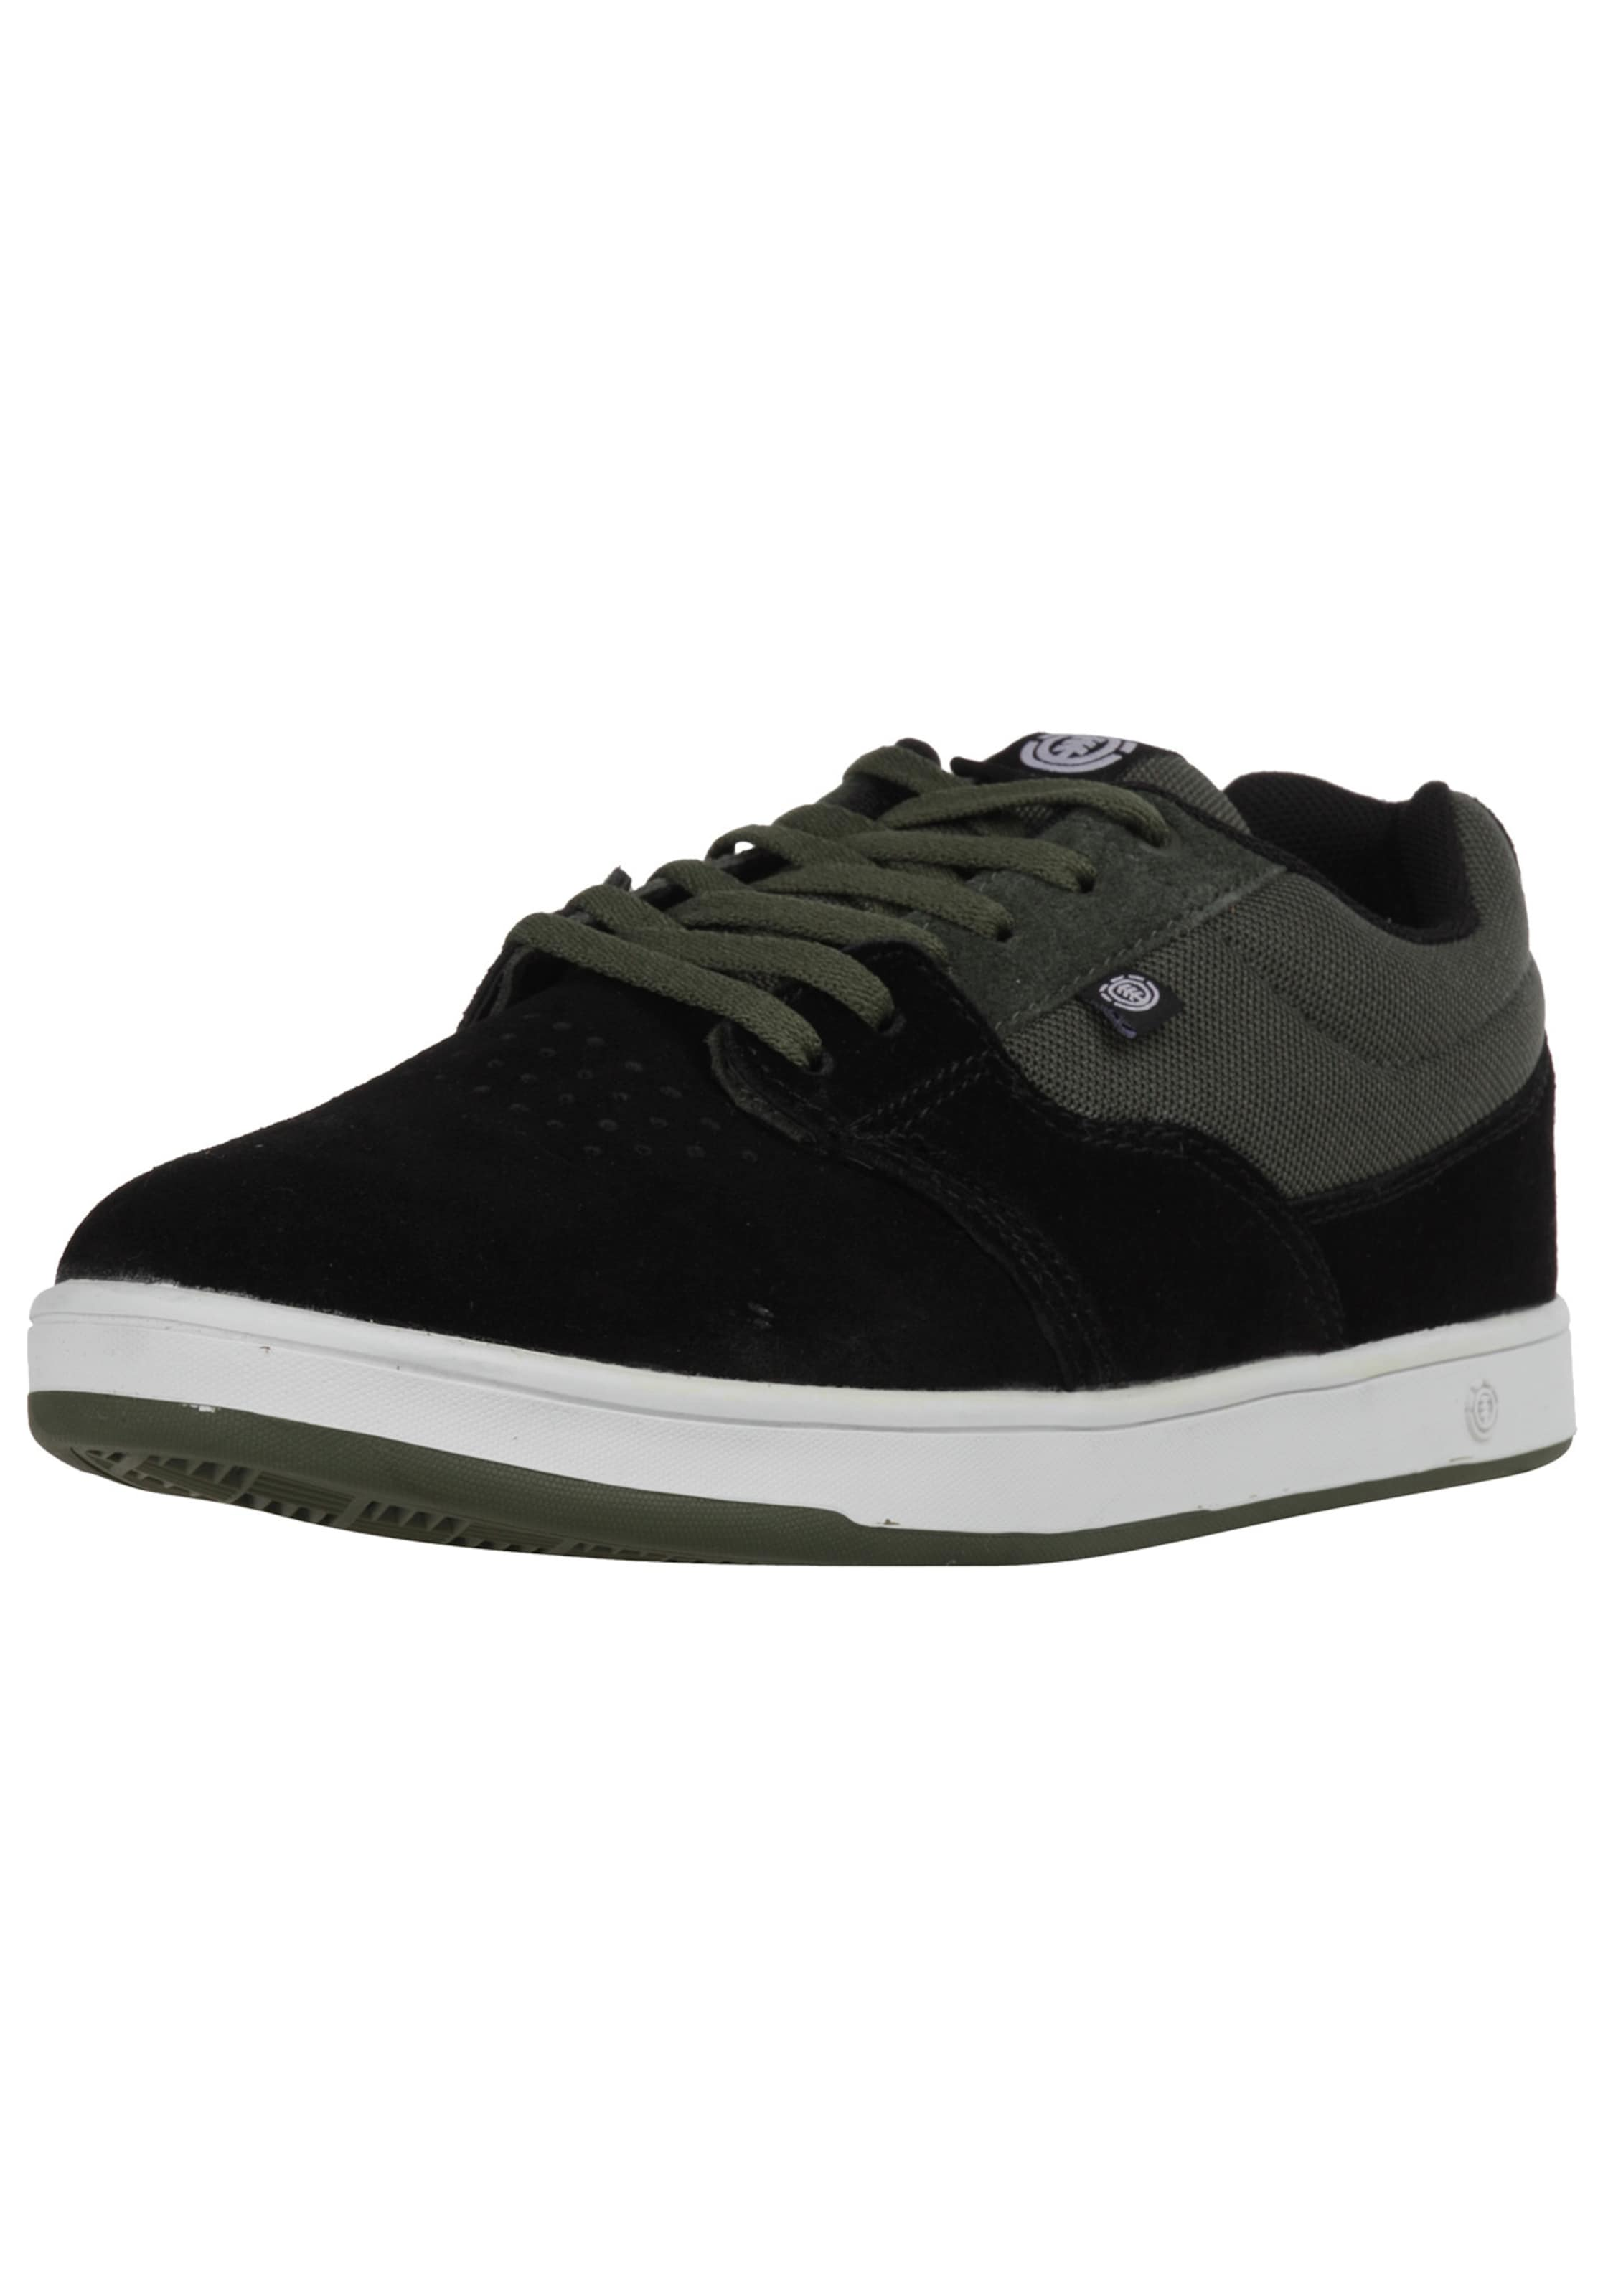 In 'granite' Sneaker Element Schwarz Sneaker 'granite' Element hCtsxdQr